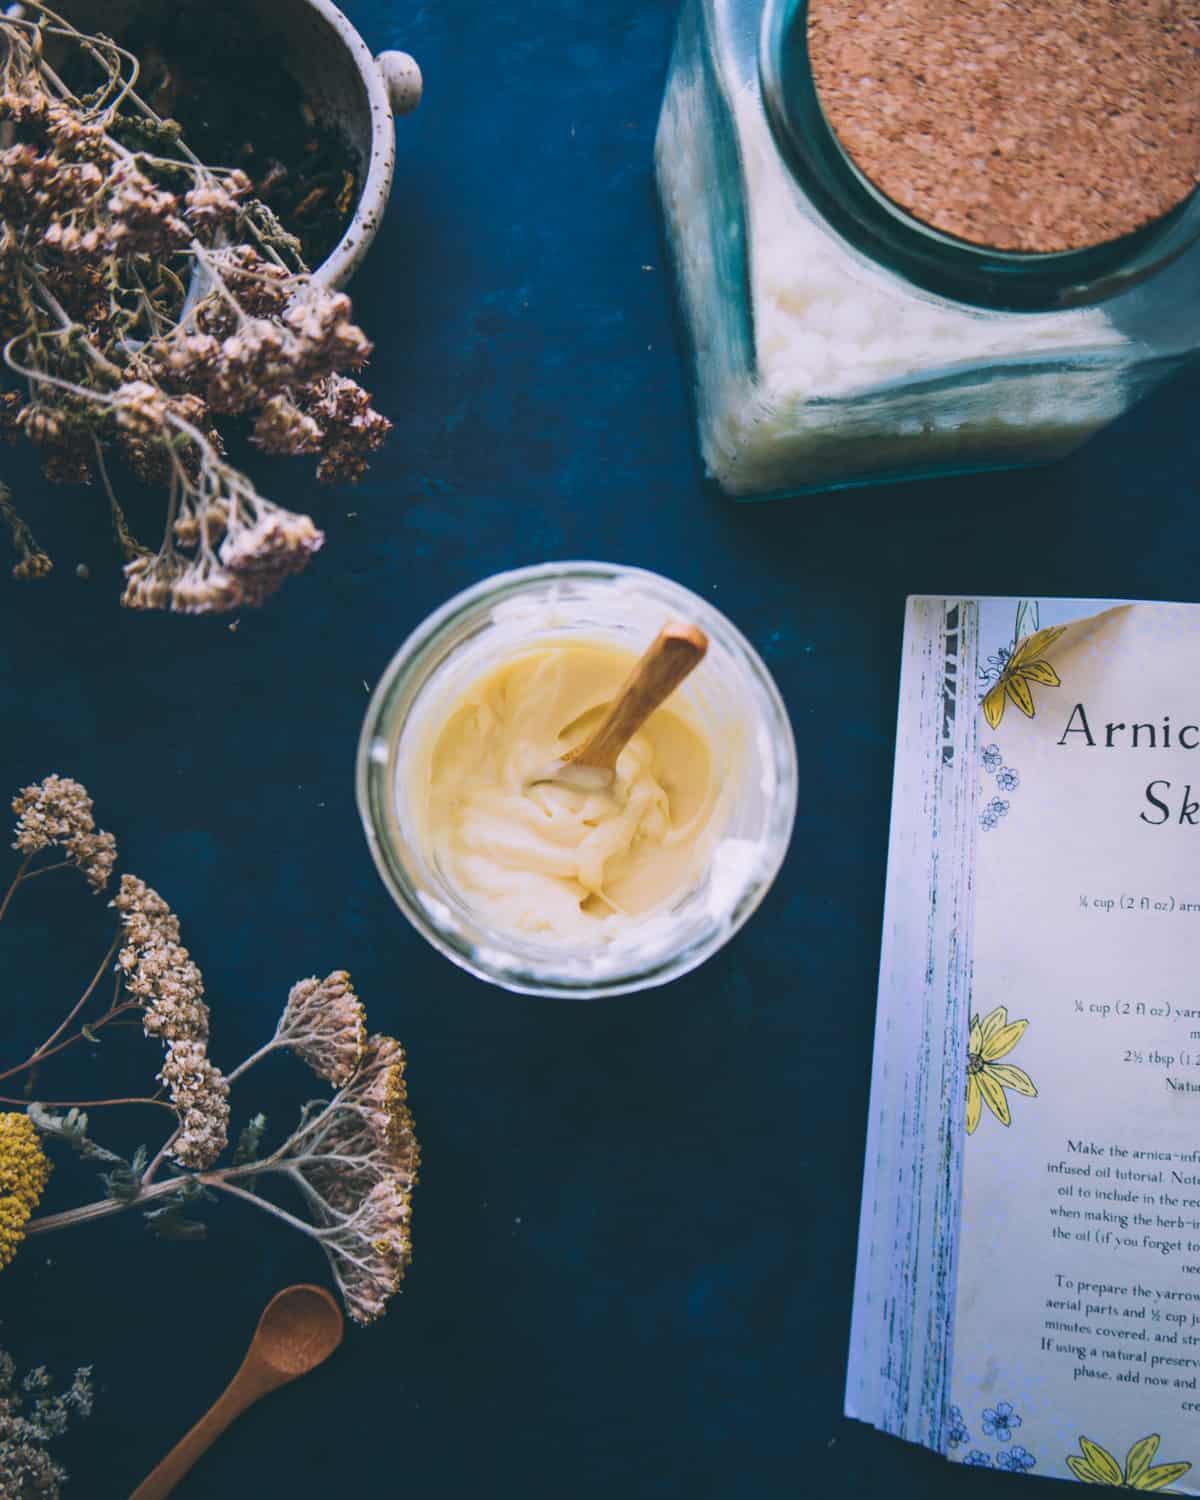 Top view of jar filled with arnica and yarrow cream, with a wooden spoon standing up in it as if it had just been stirred. On a navy blue countertop surrounded by the recipe book and dried yarrow flowers.